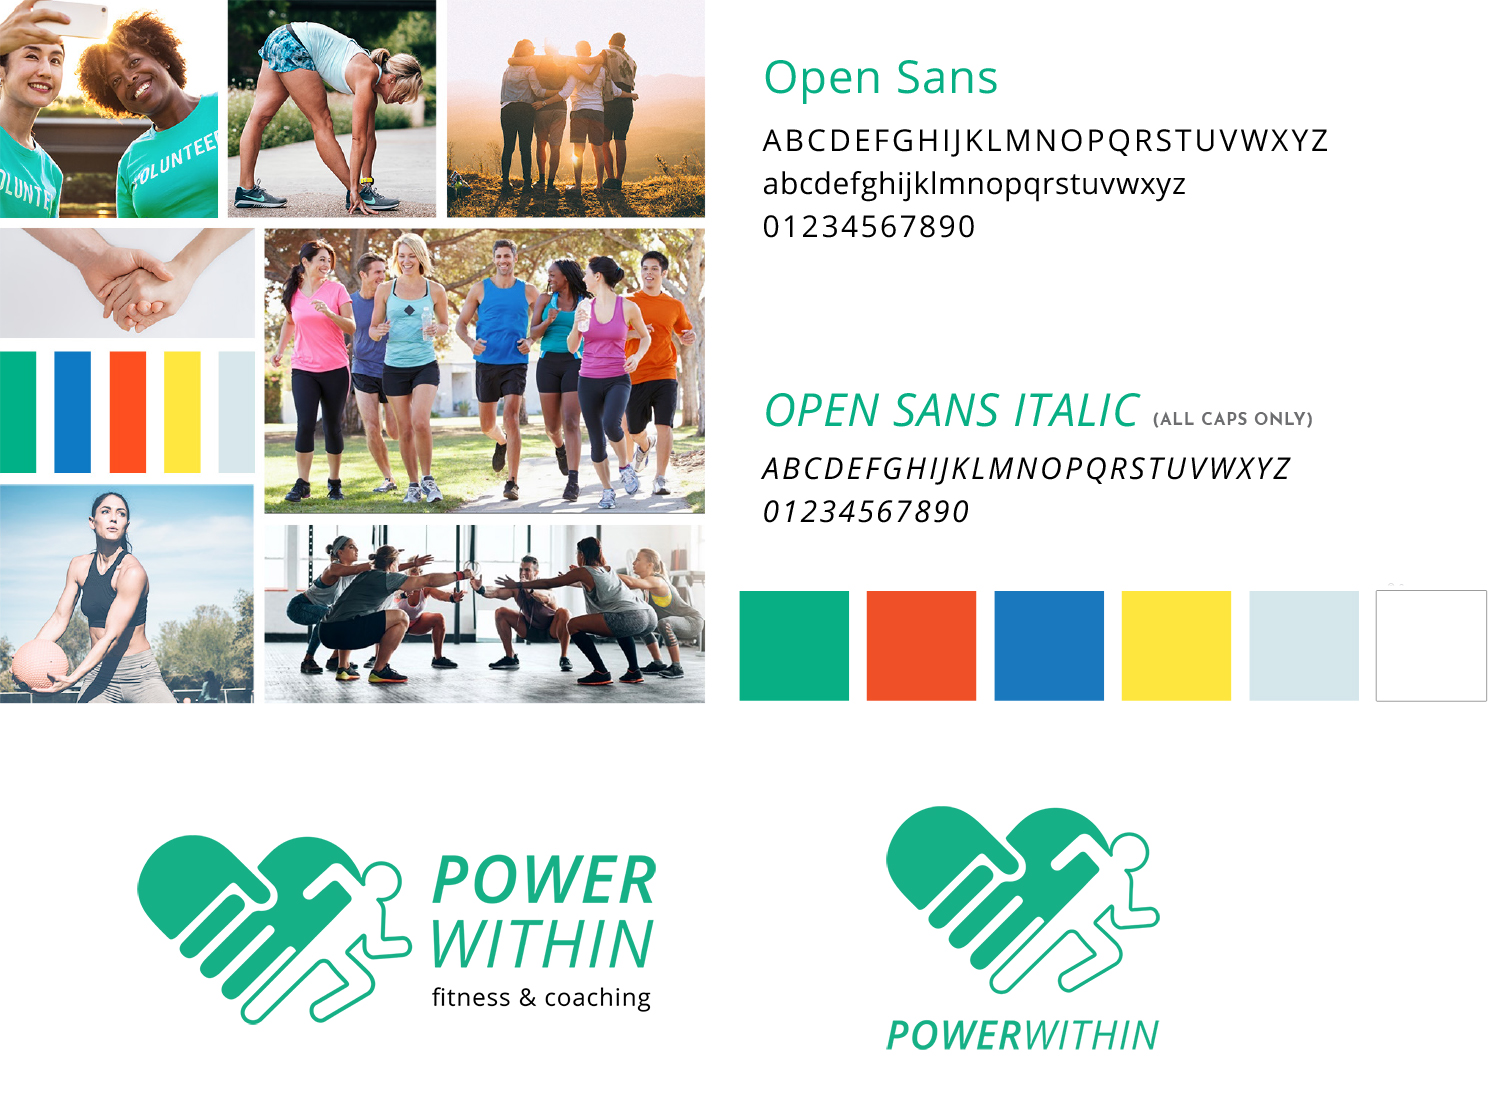 Personal trainer & running coach brand and logo design